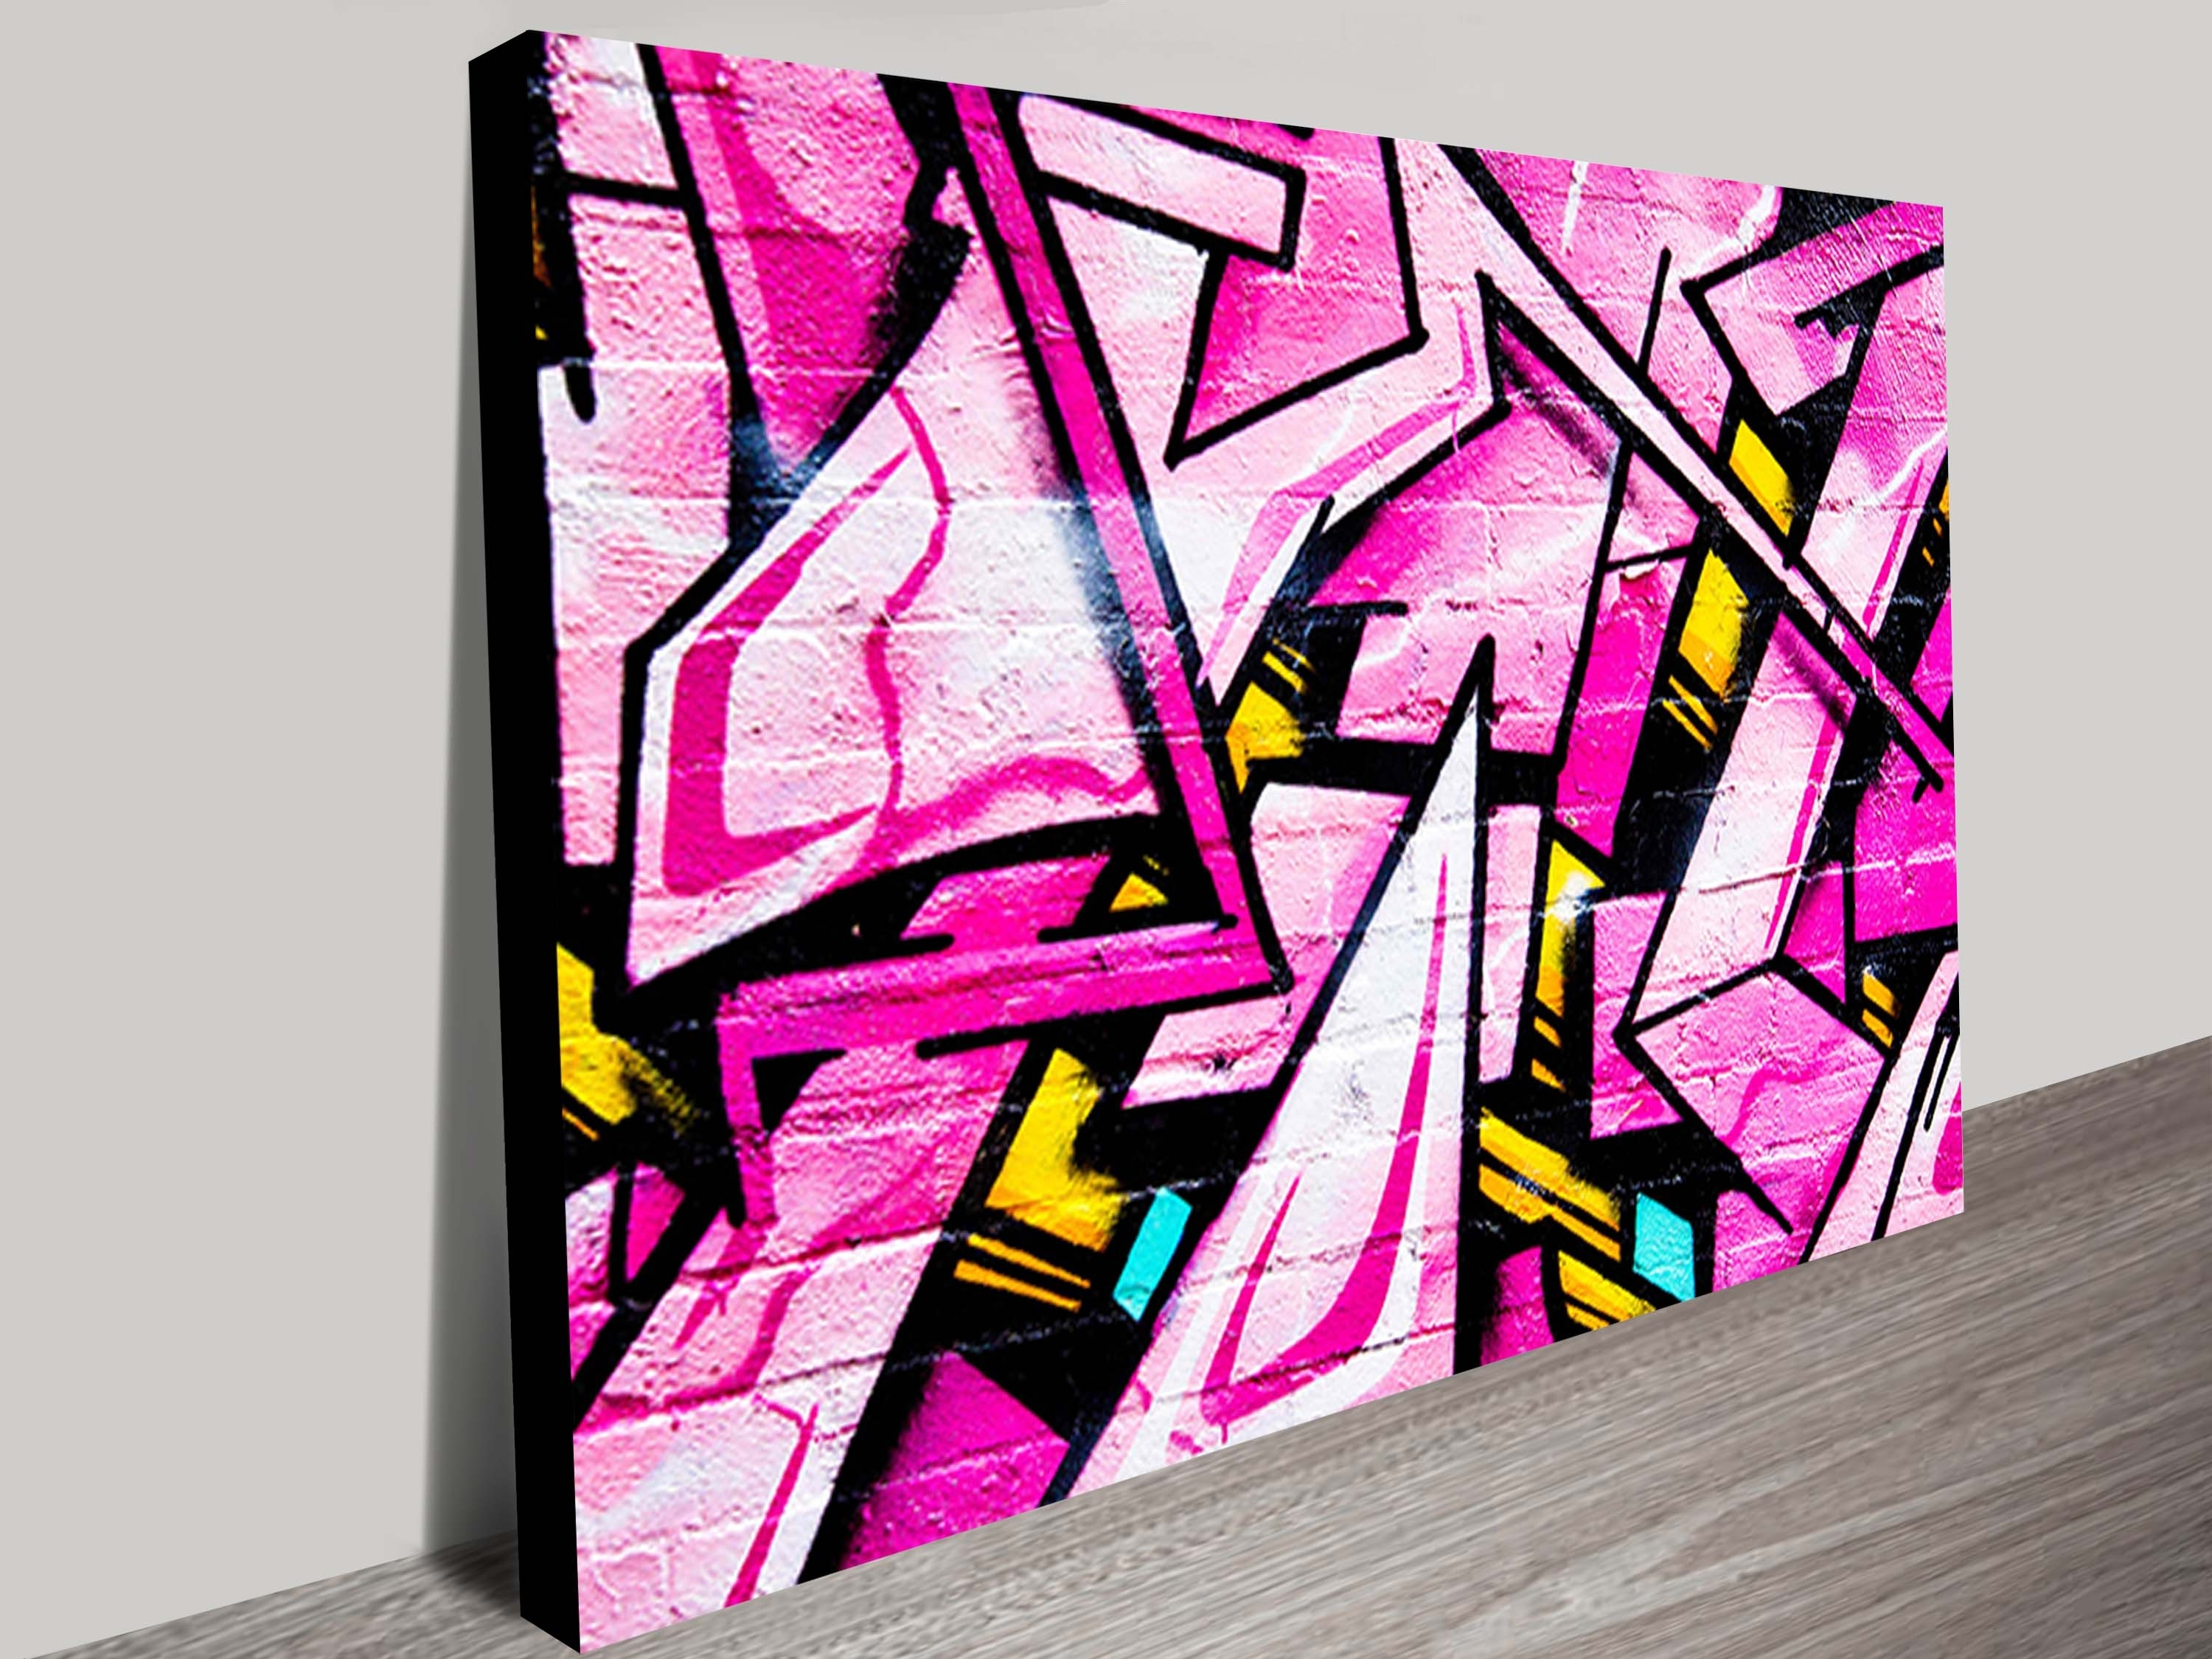 Graffiti Street Art On Canvas Brisbane Australia Throughout Recent Brisbane Abstract Wall Art (Gallery 15 of 15)